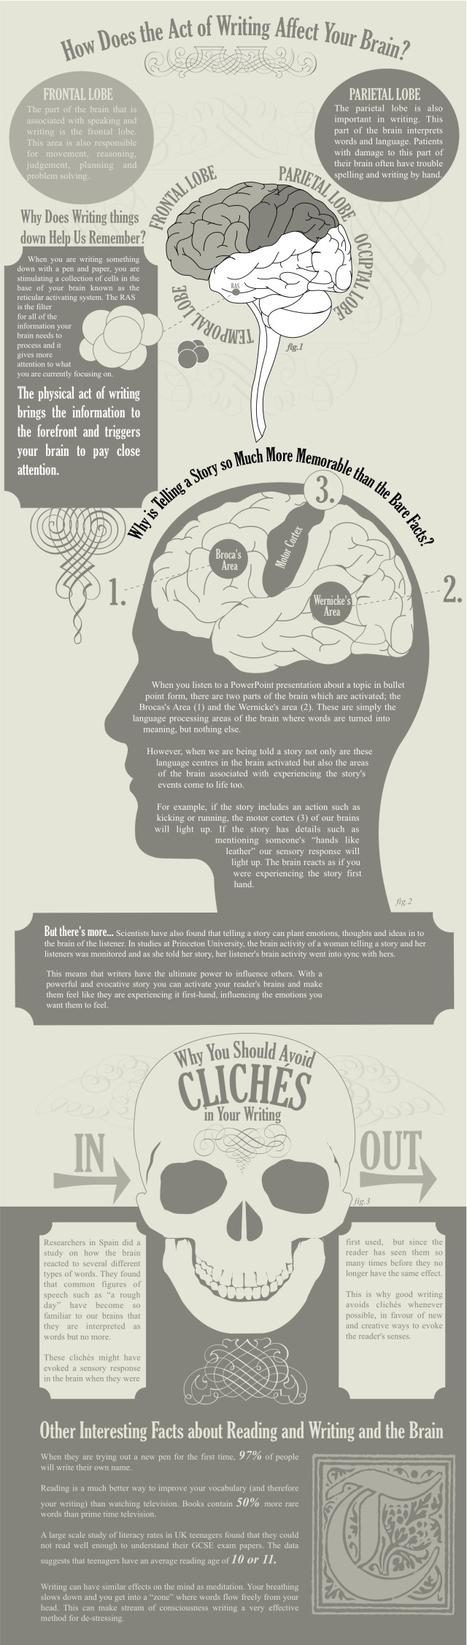 How Does Writing Affect Your Brain? [infographic] | Learning With Social Media Tools & Mobile | Scoop.it